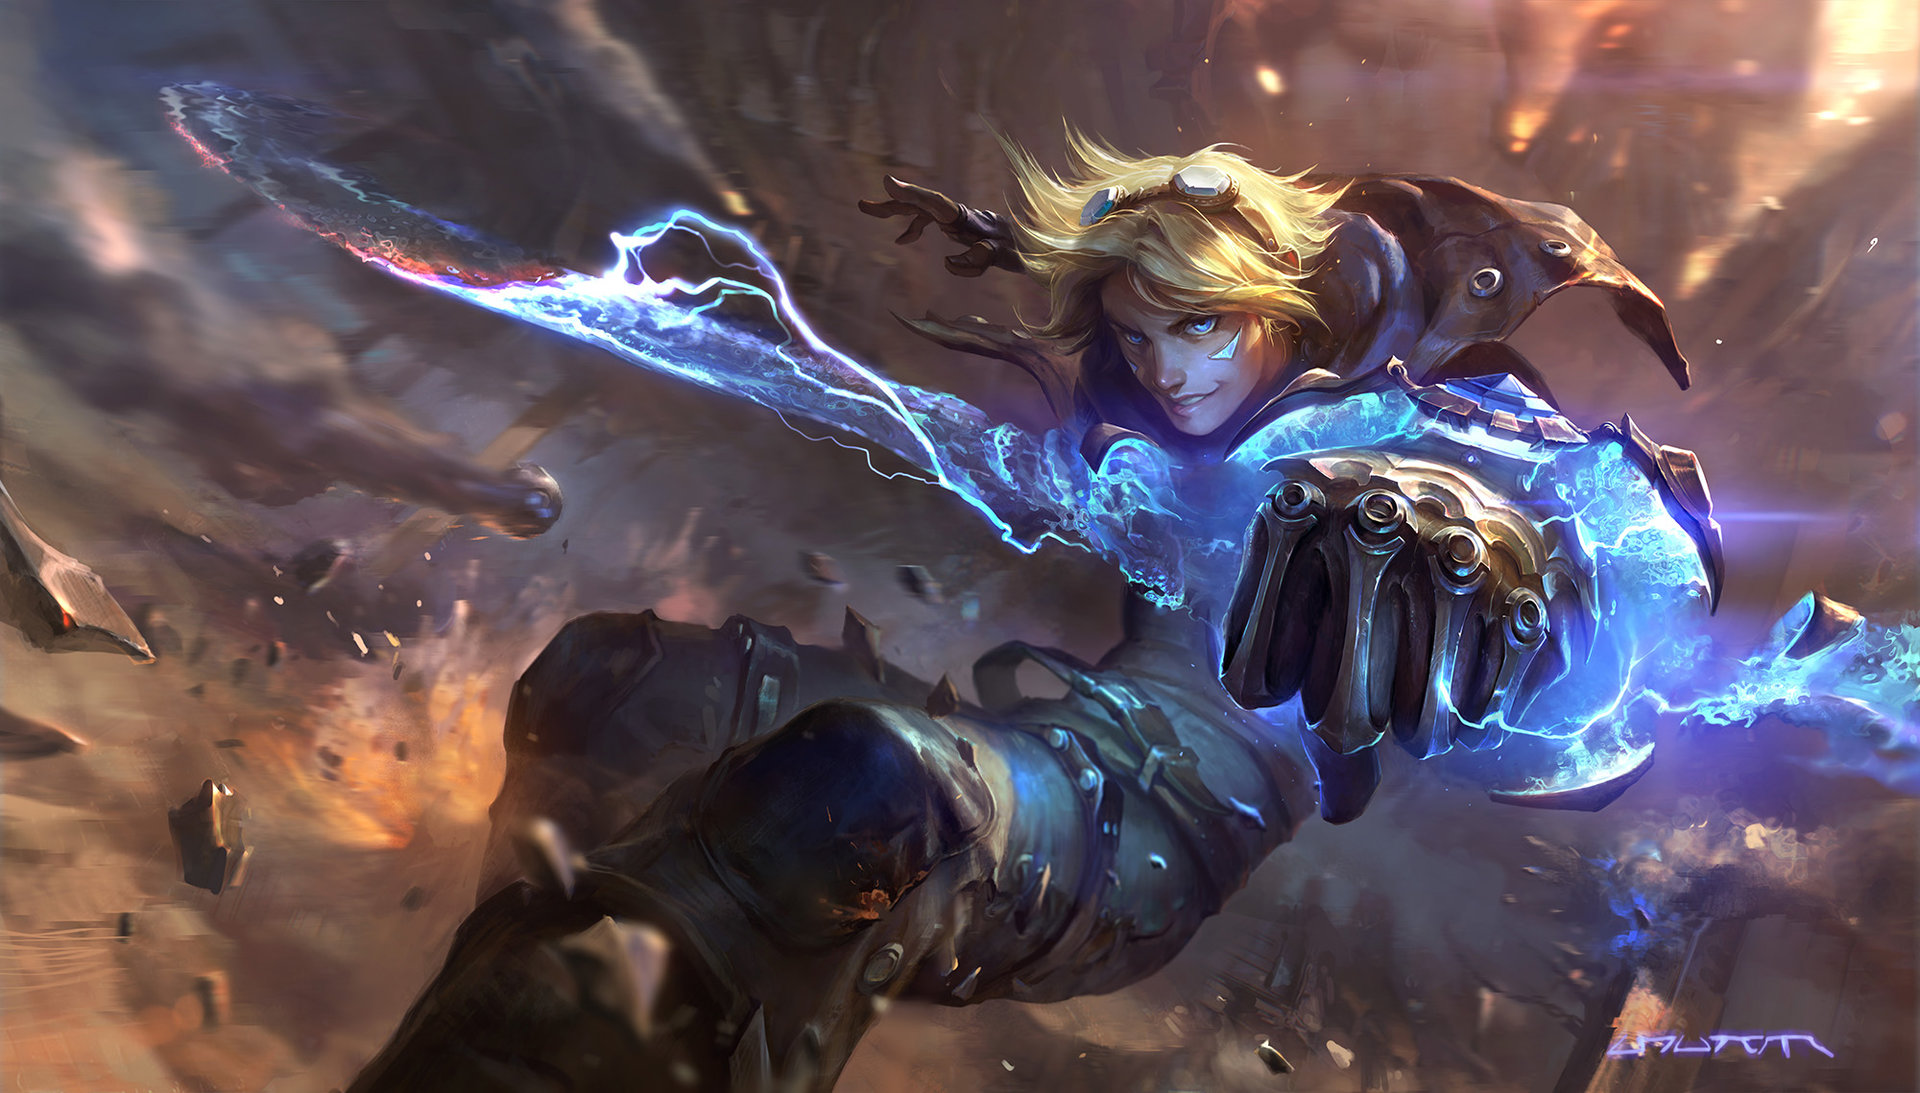 suke-ezreal-base-final.jpg